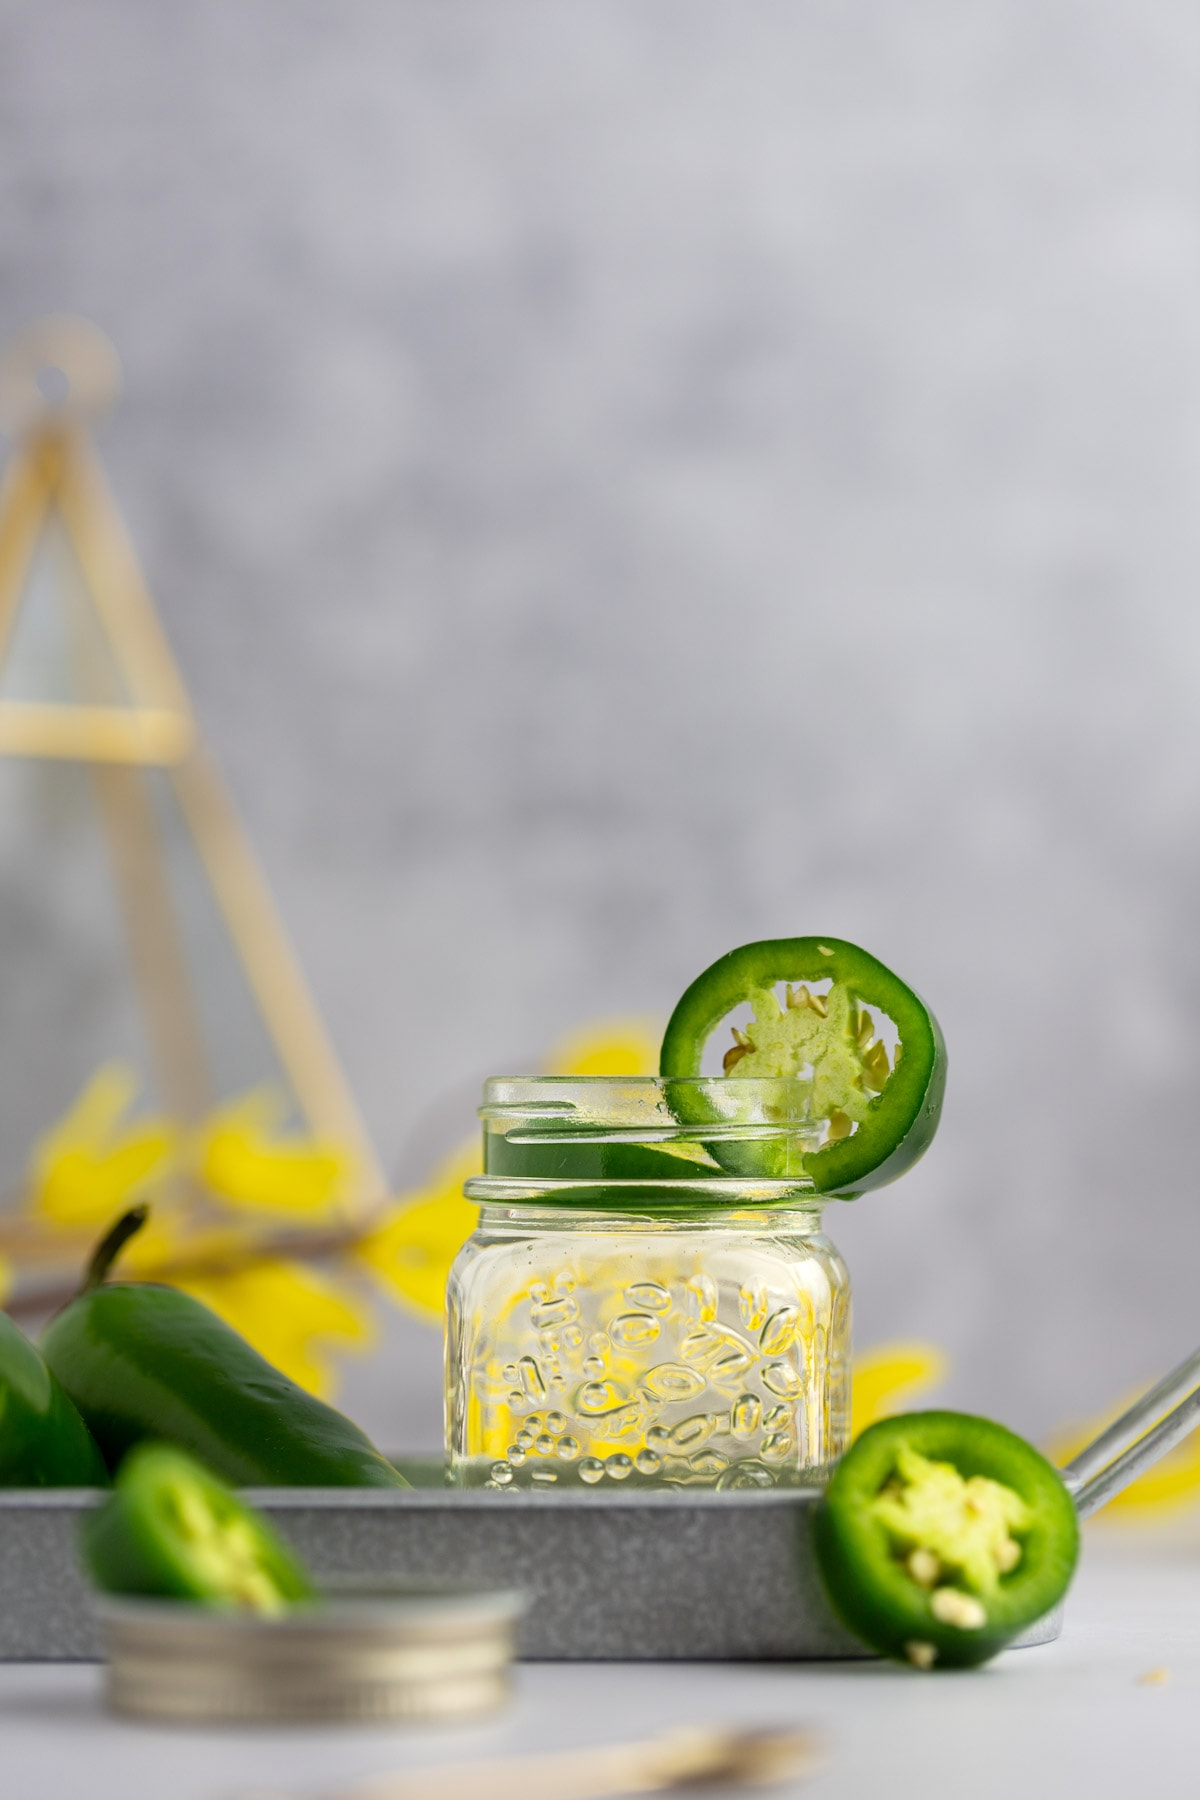 Glass jar of jalapeño simple syrup on a metal tin, garnished with a slice of jalapeño, yellow flowers in the background.